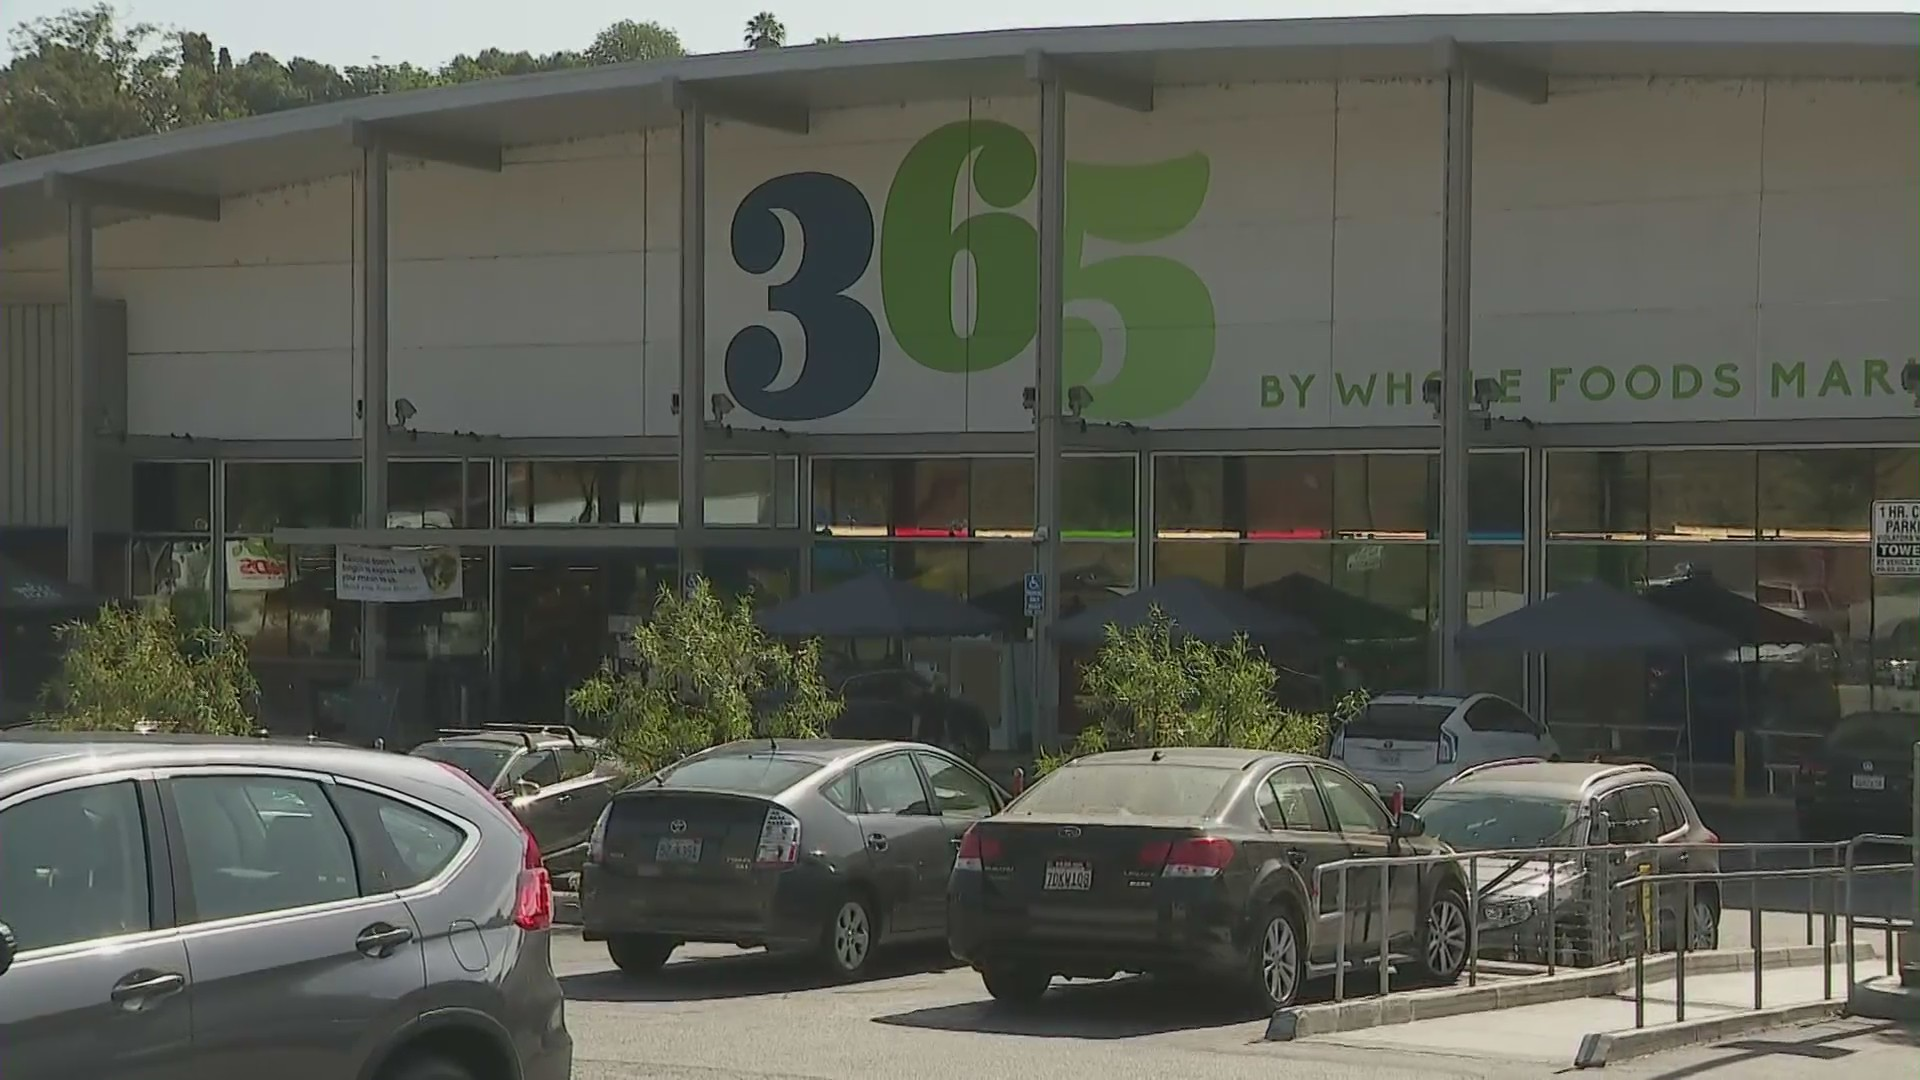 Whole Foods Market 365 is seen on July 14, 2020. (KTLA)